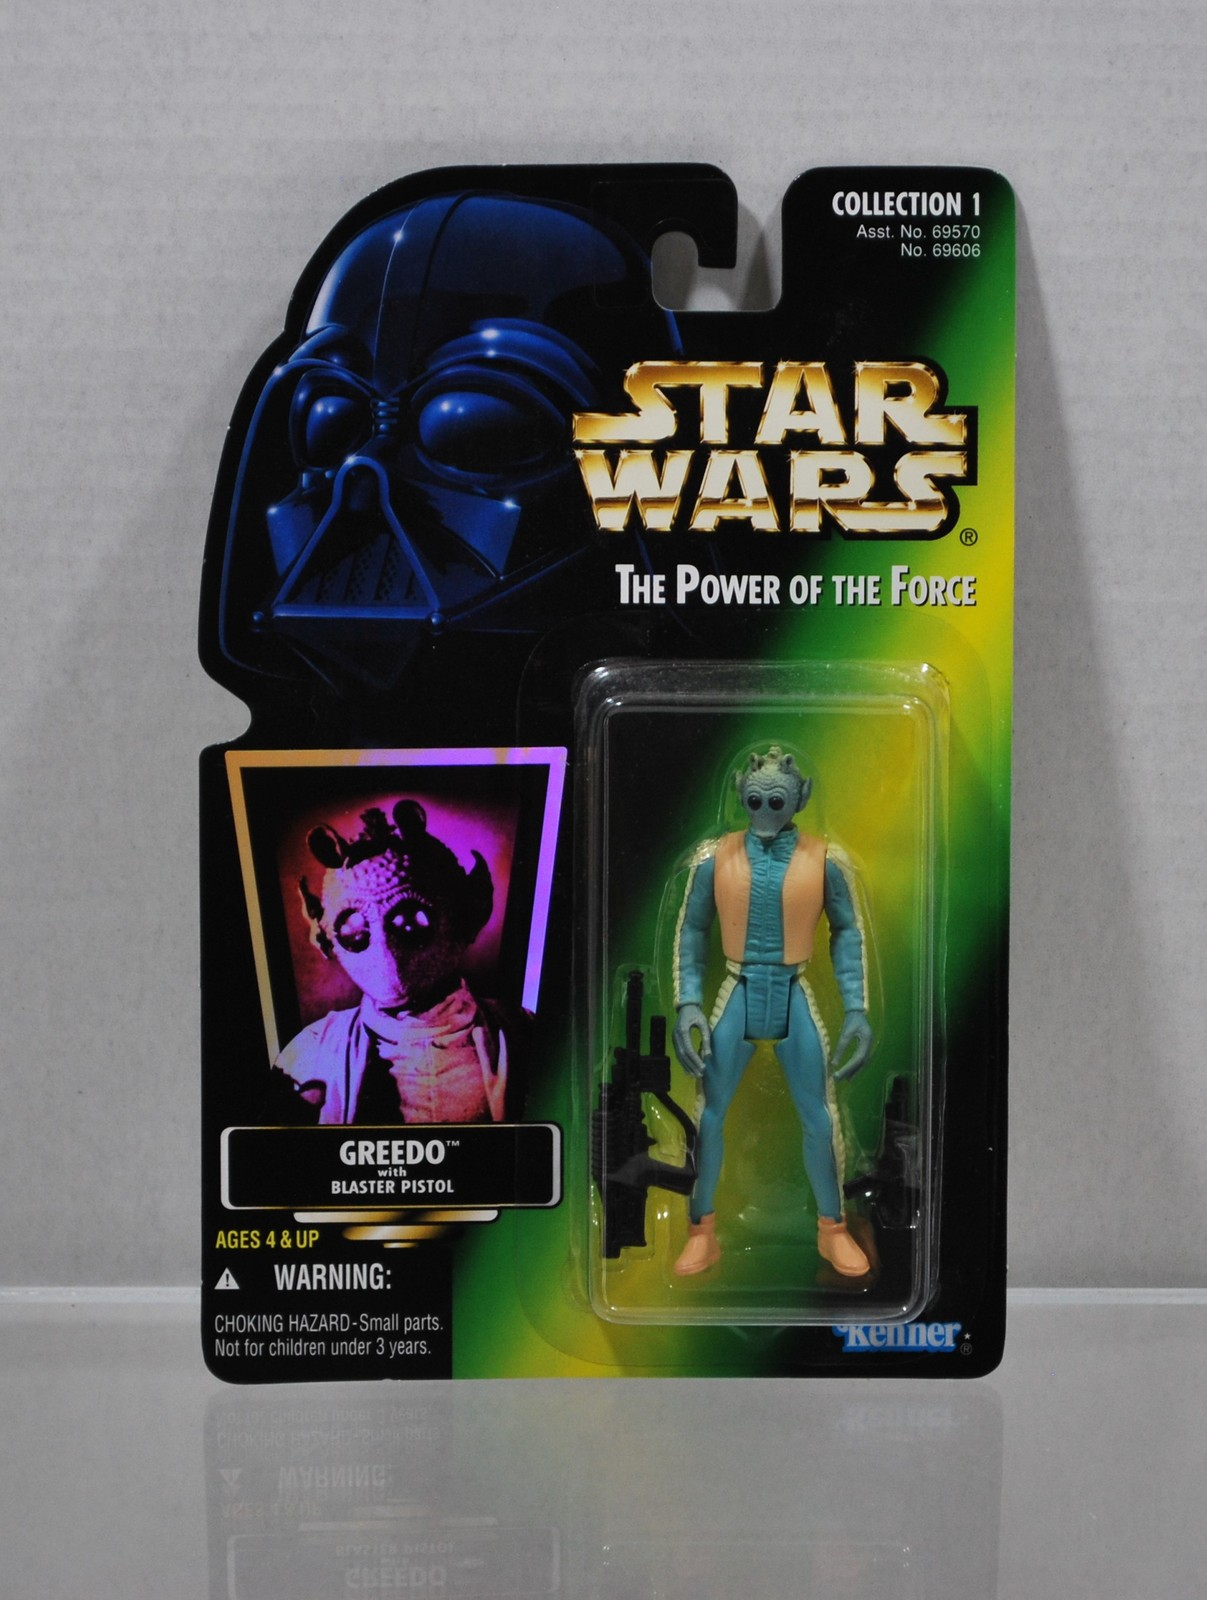 Star Wars The Power of the Force Greedo Collection 1  1996